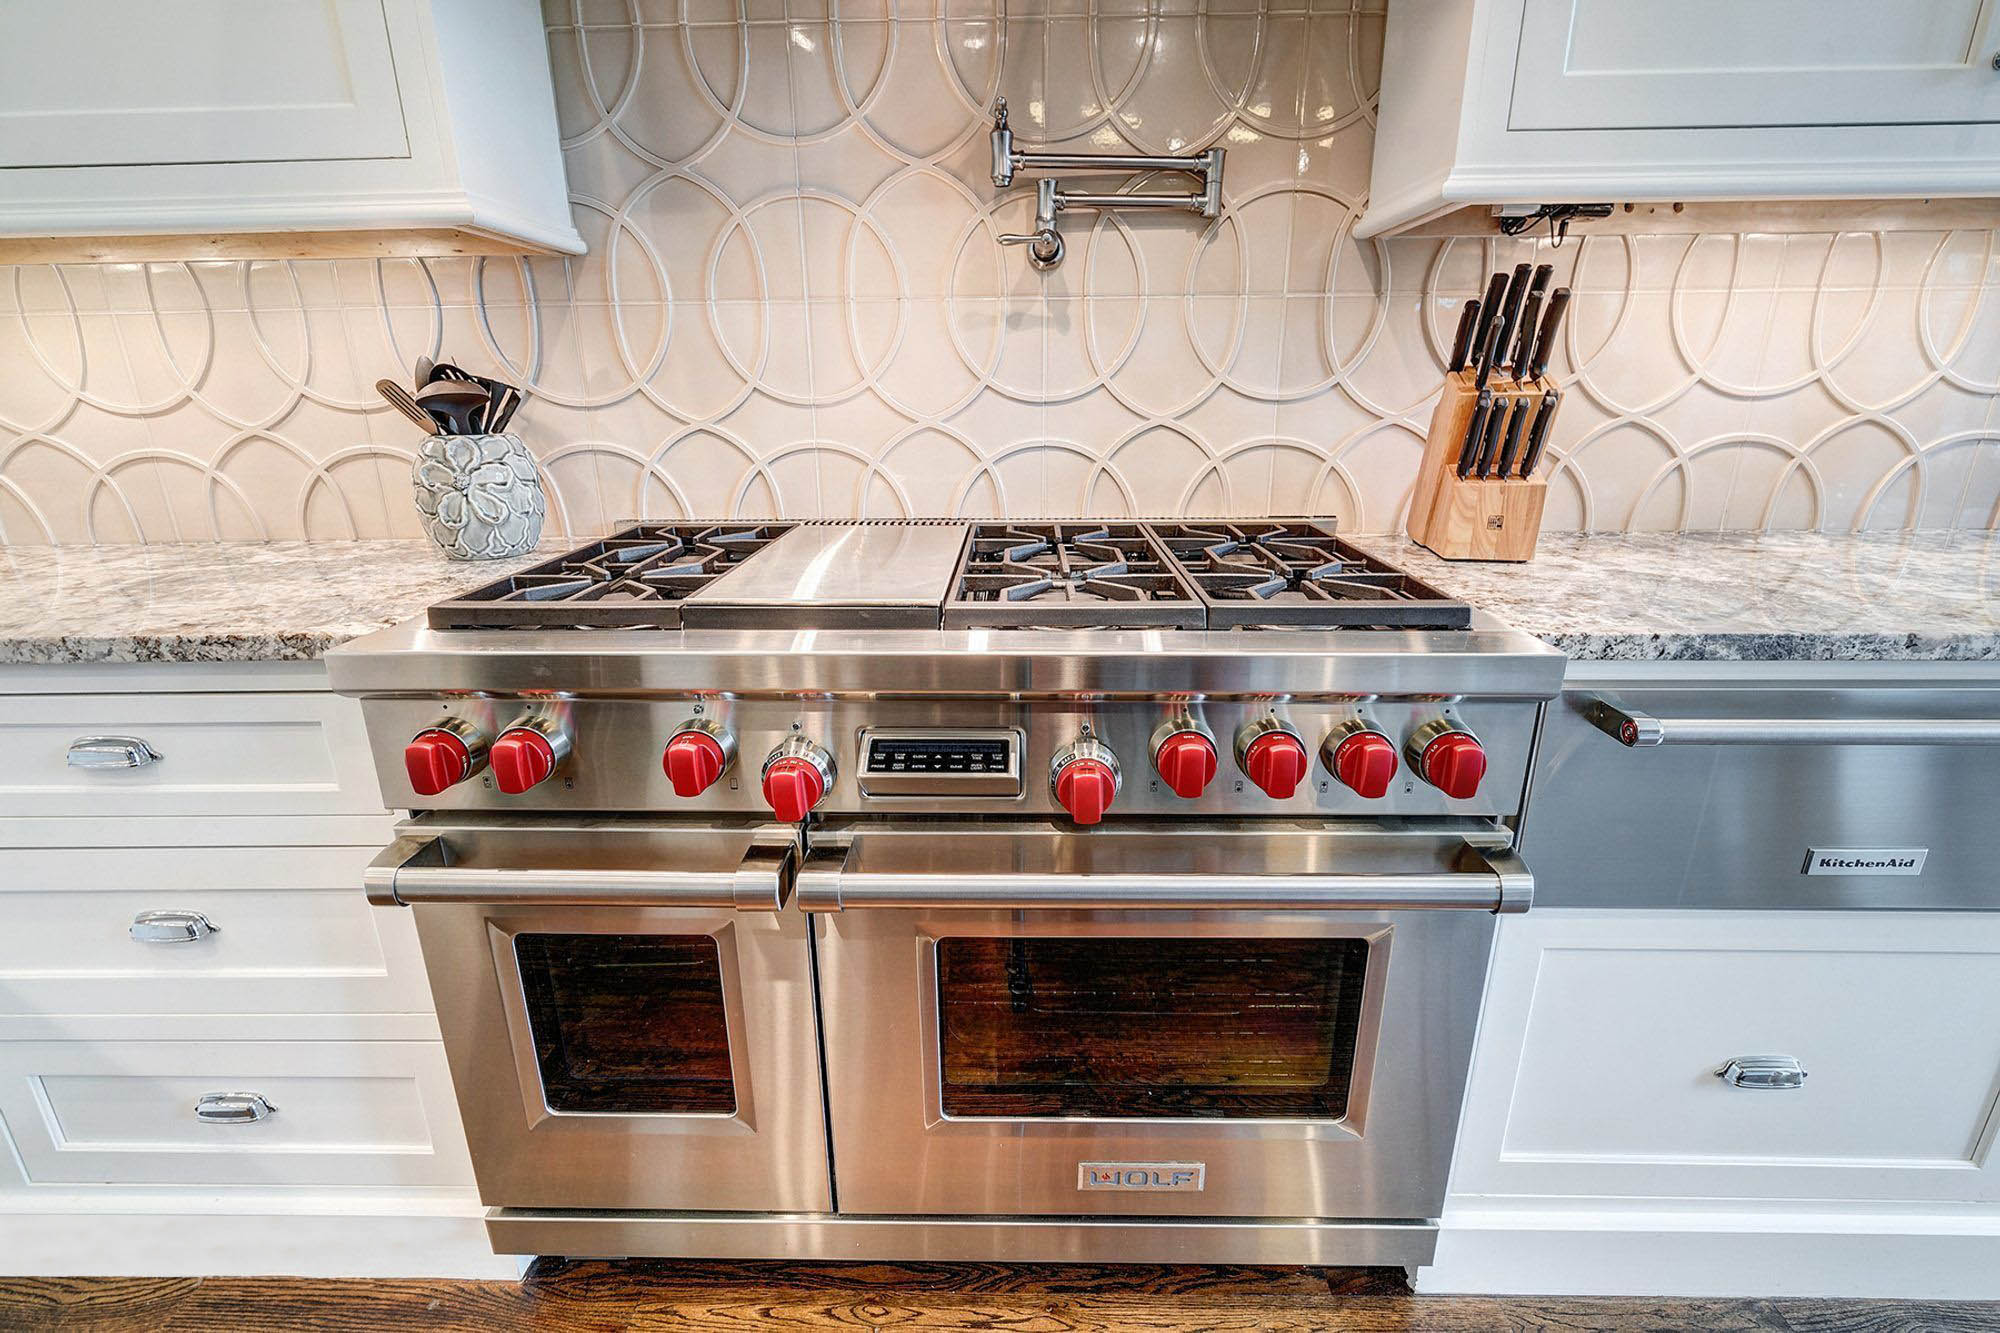 "48"" Wolf range with dual ovens, stainless steel finish and red knobs. Viking vs Wolf ranges"